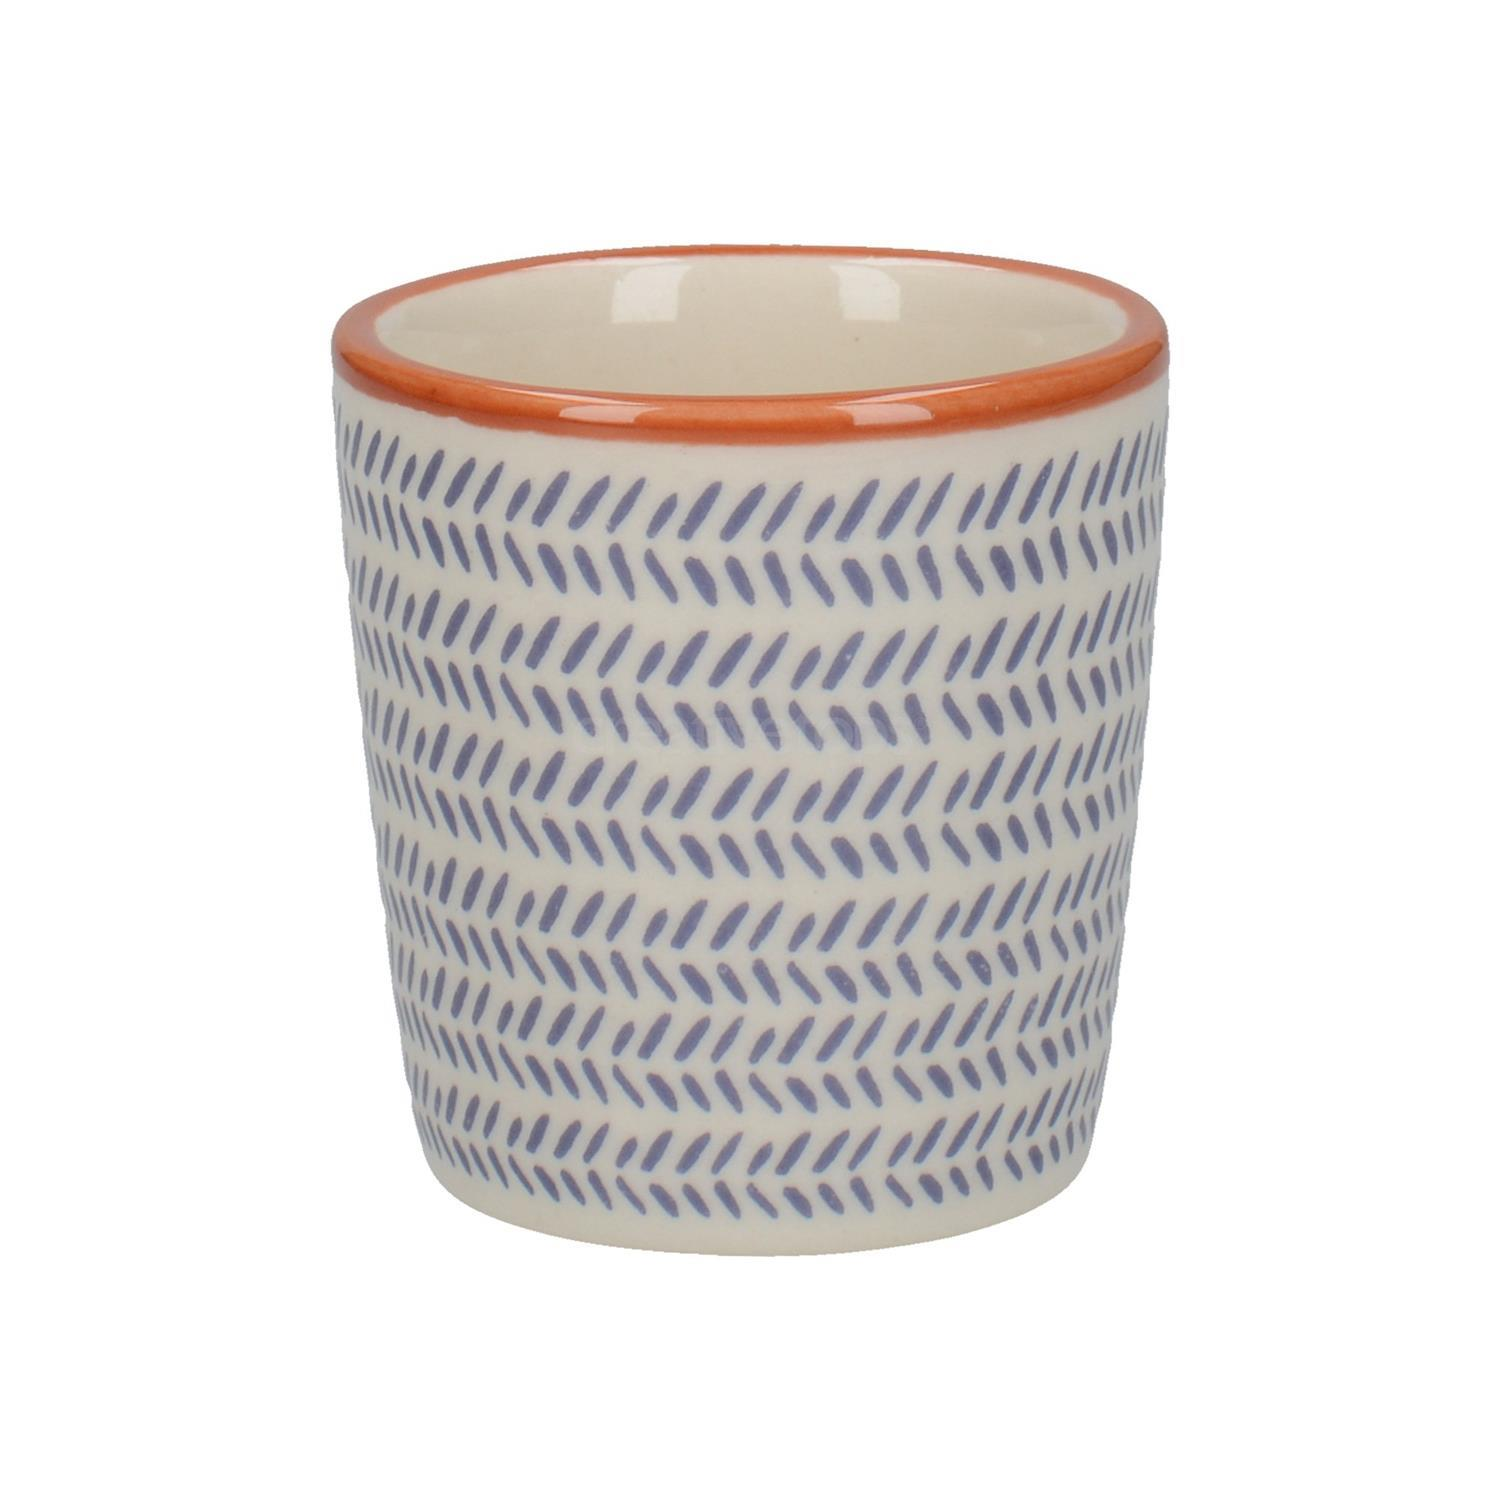 Image of Drift Egg Cup, Markmaking